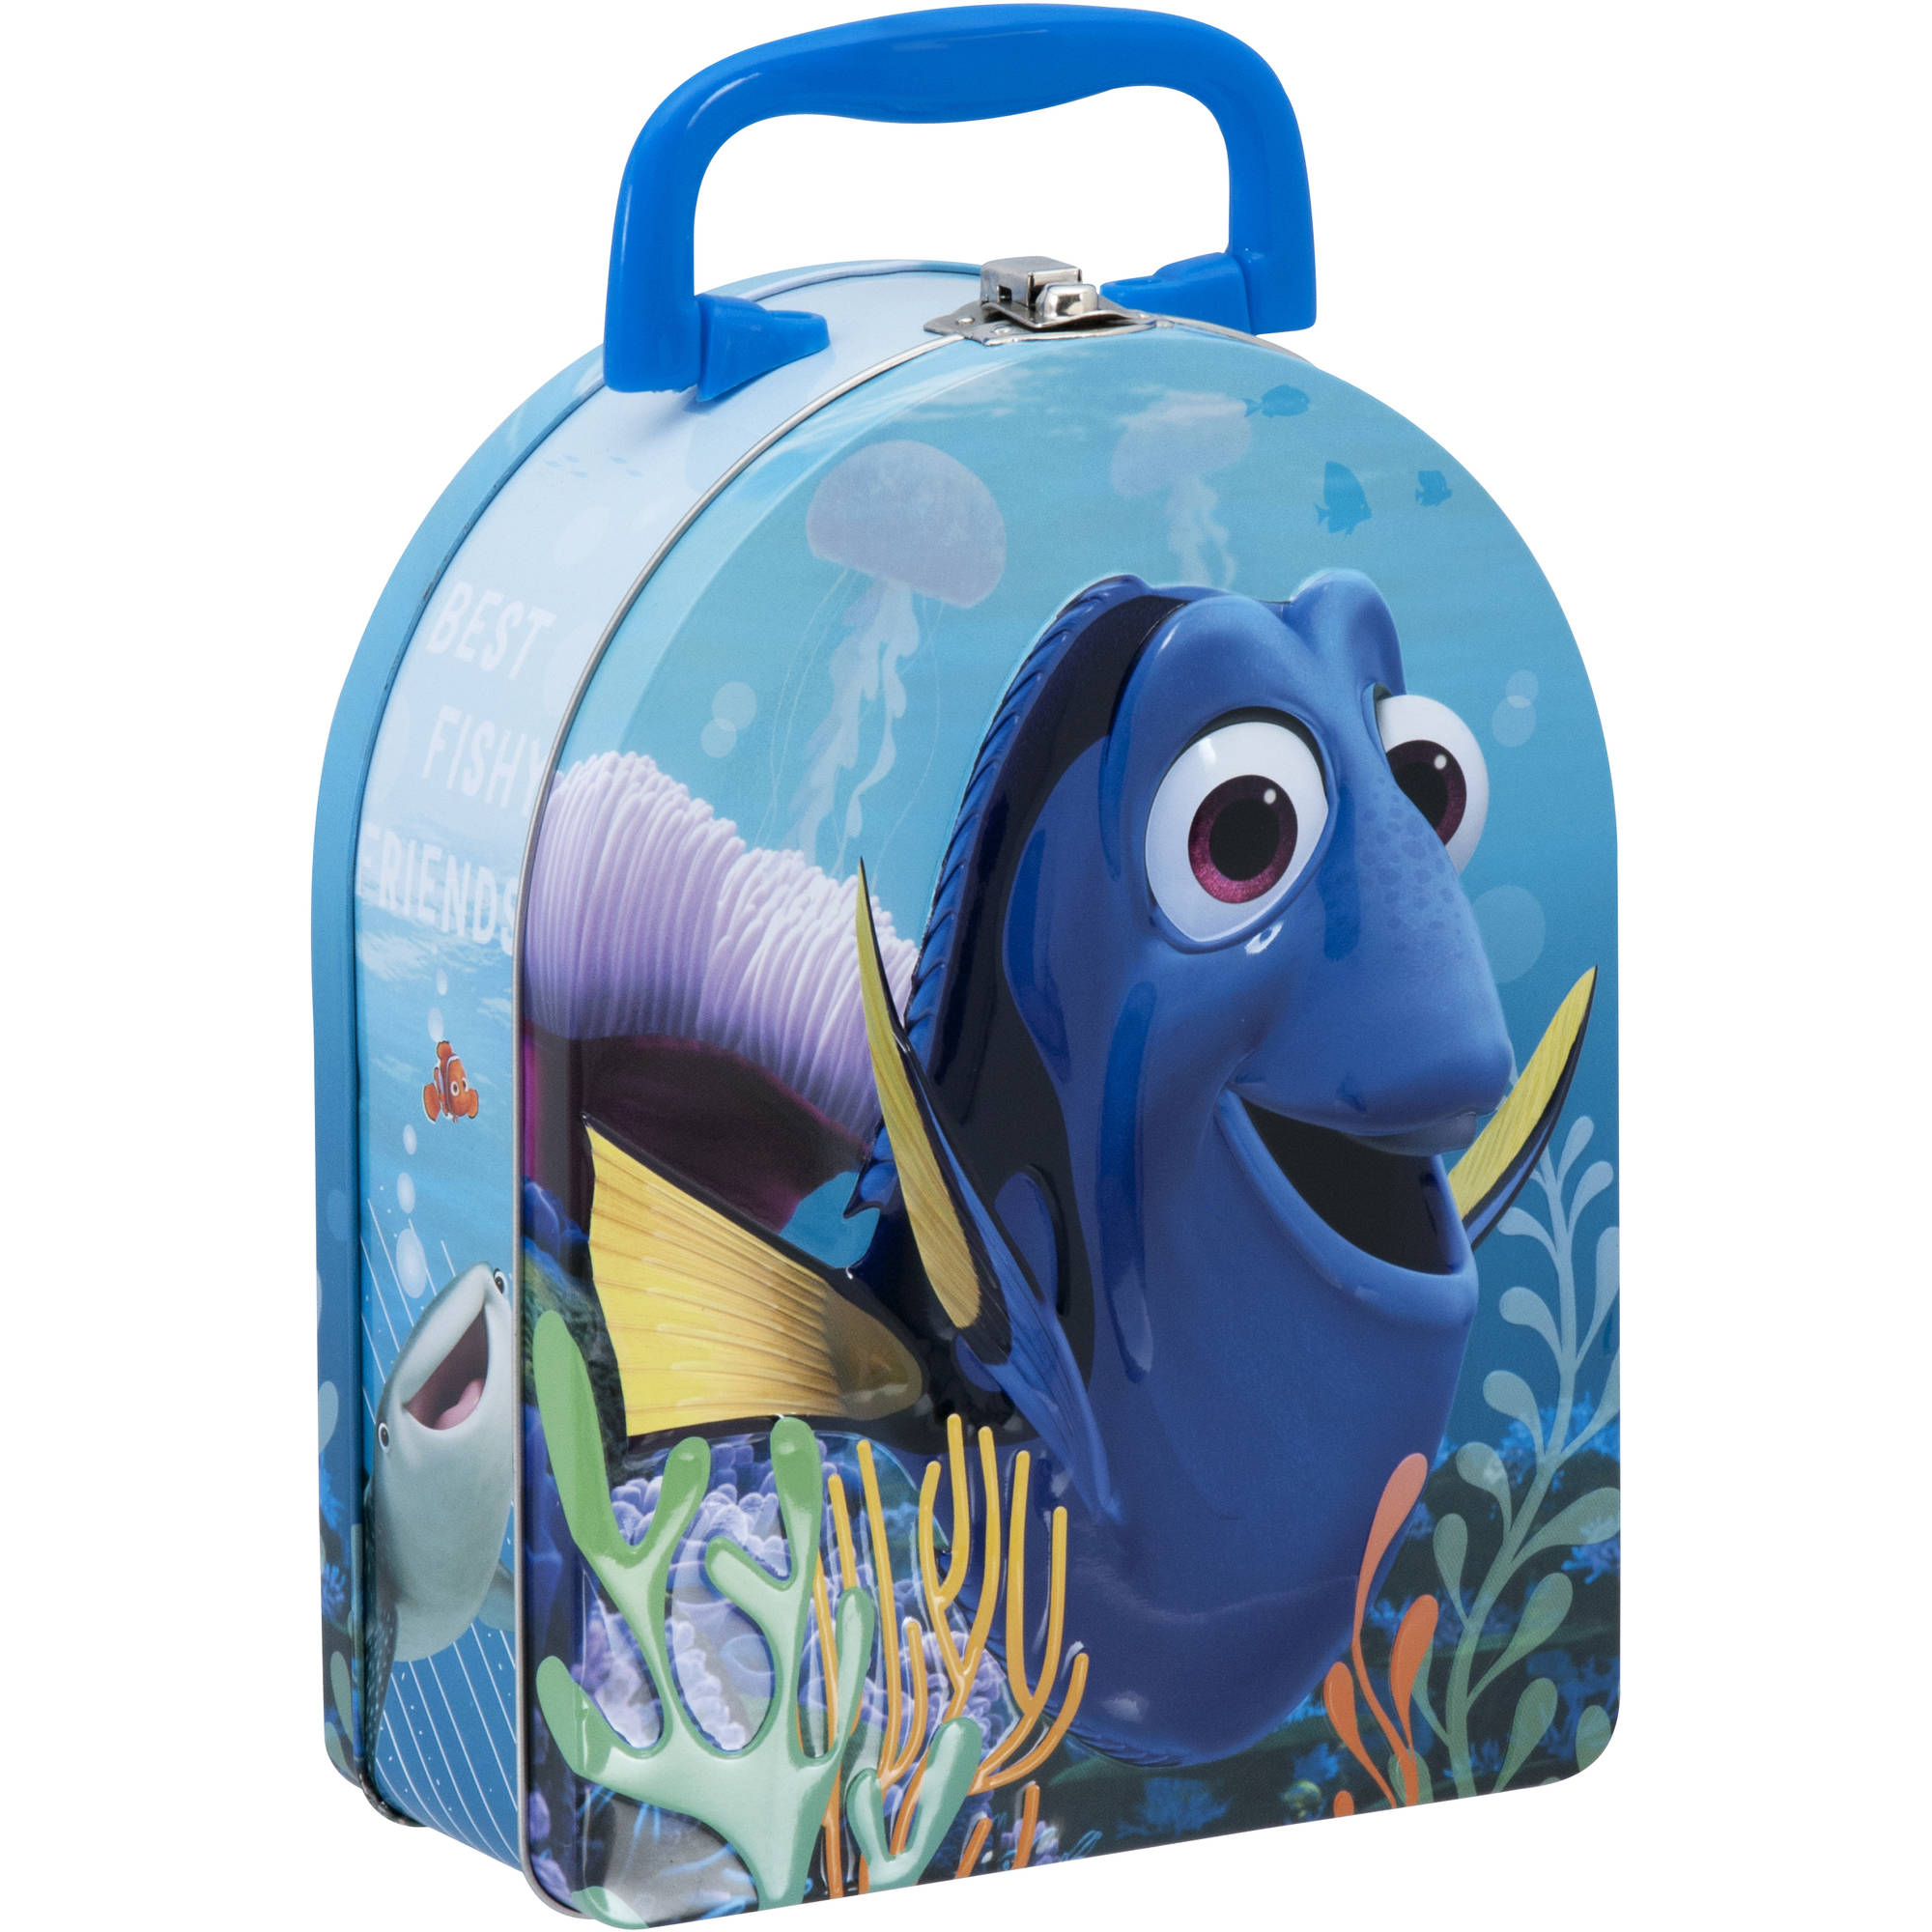 Dory Arch Shaped Tin Carrier